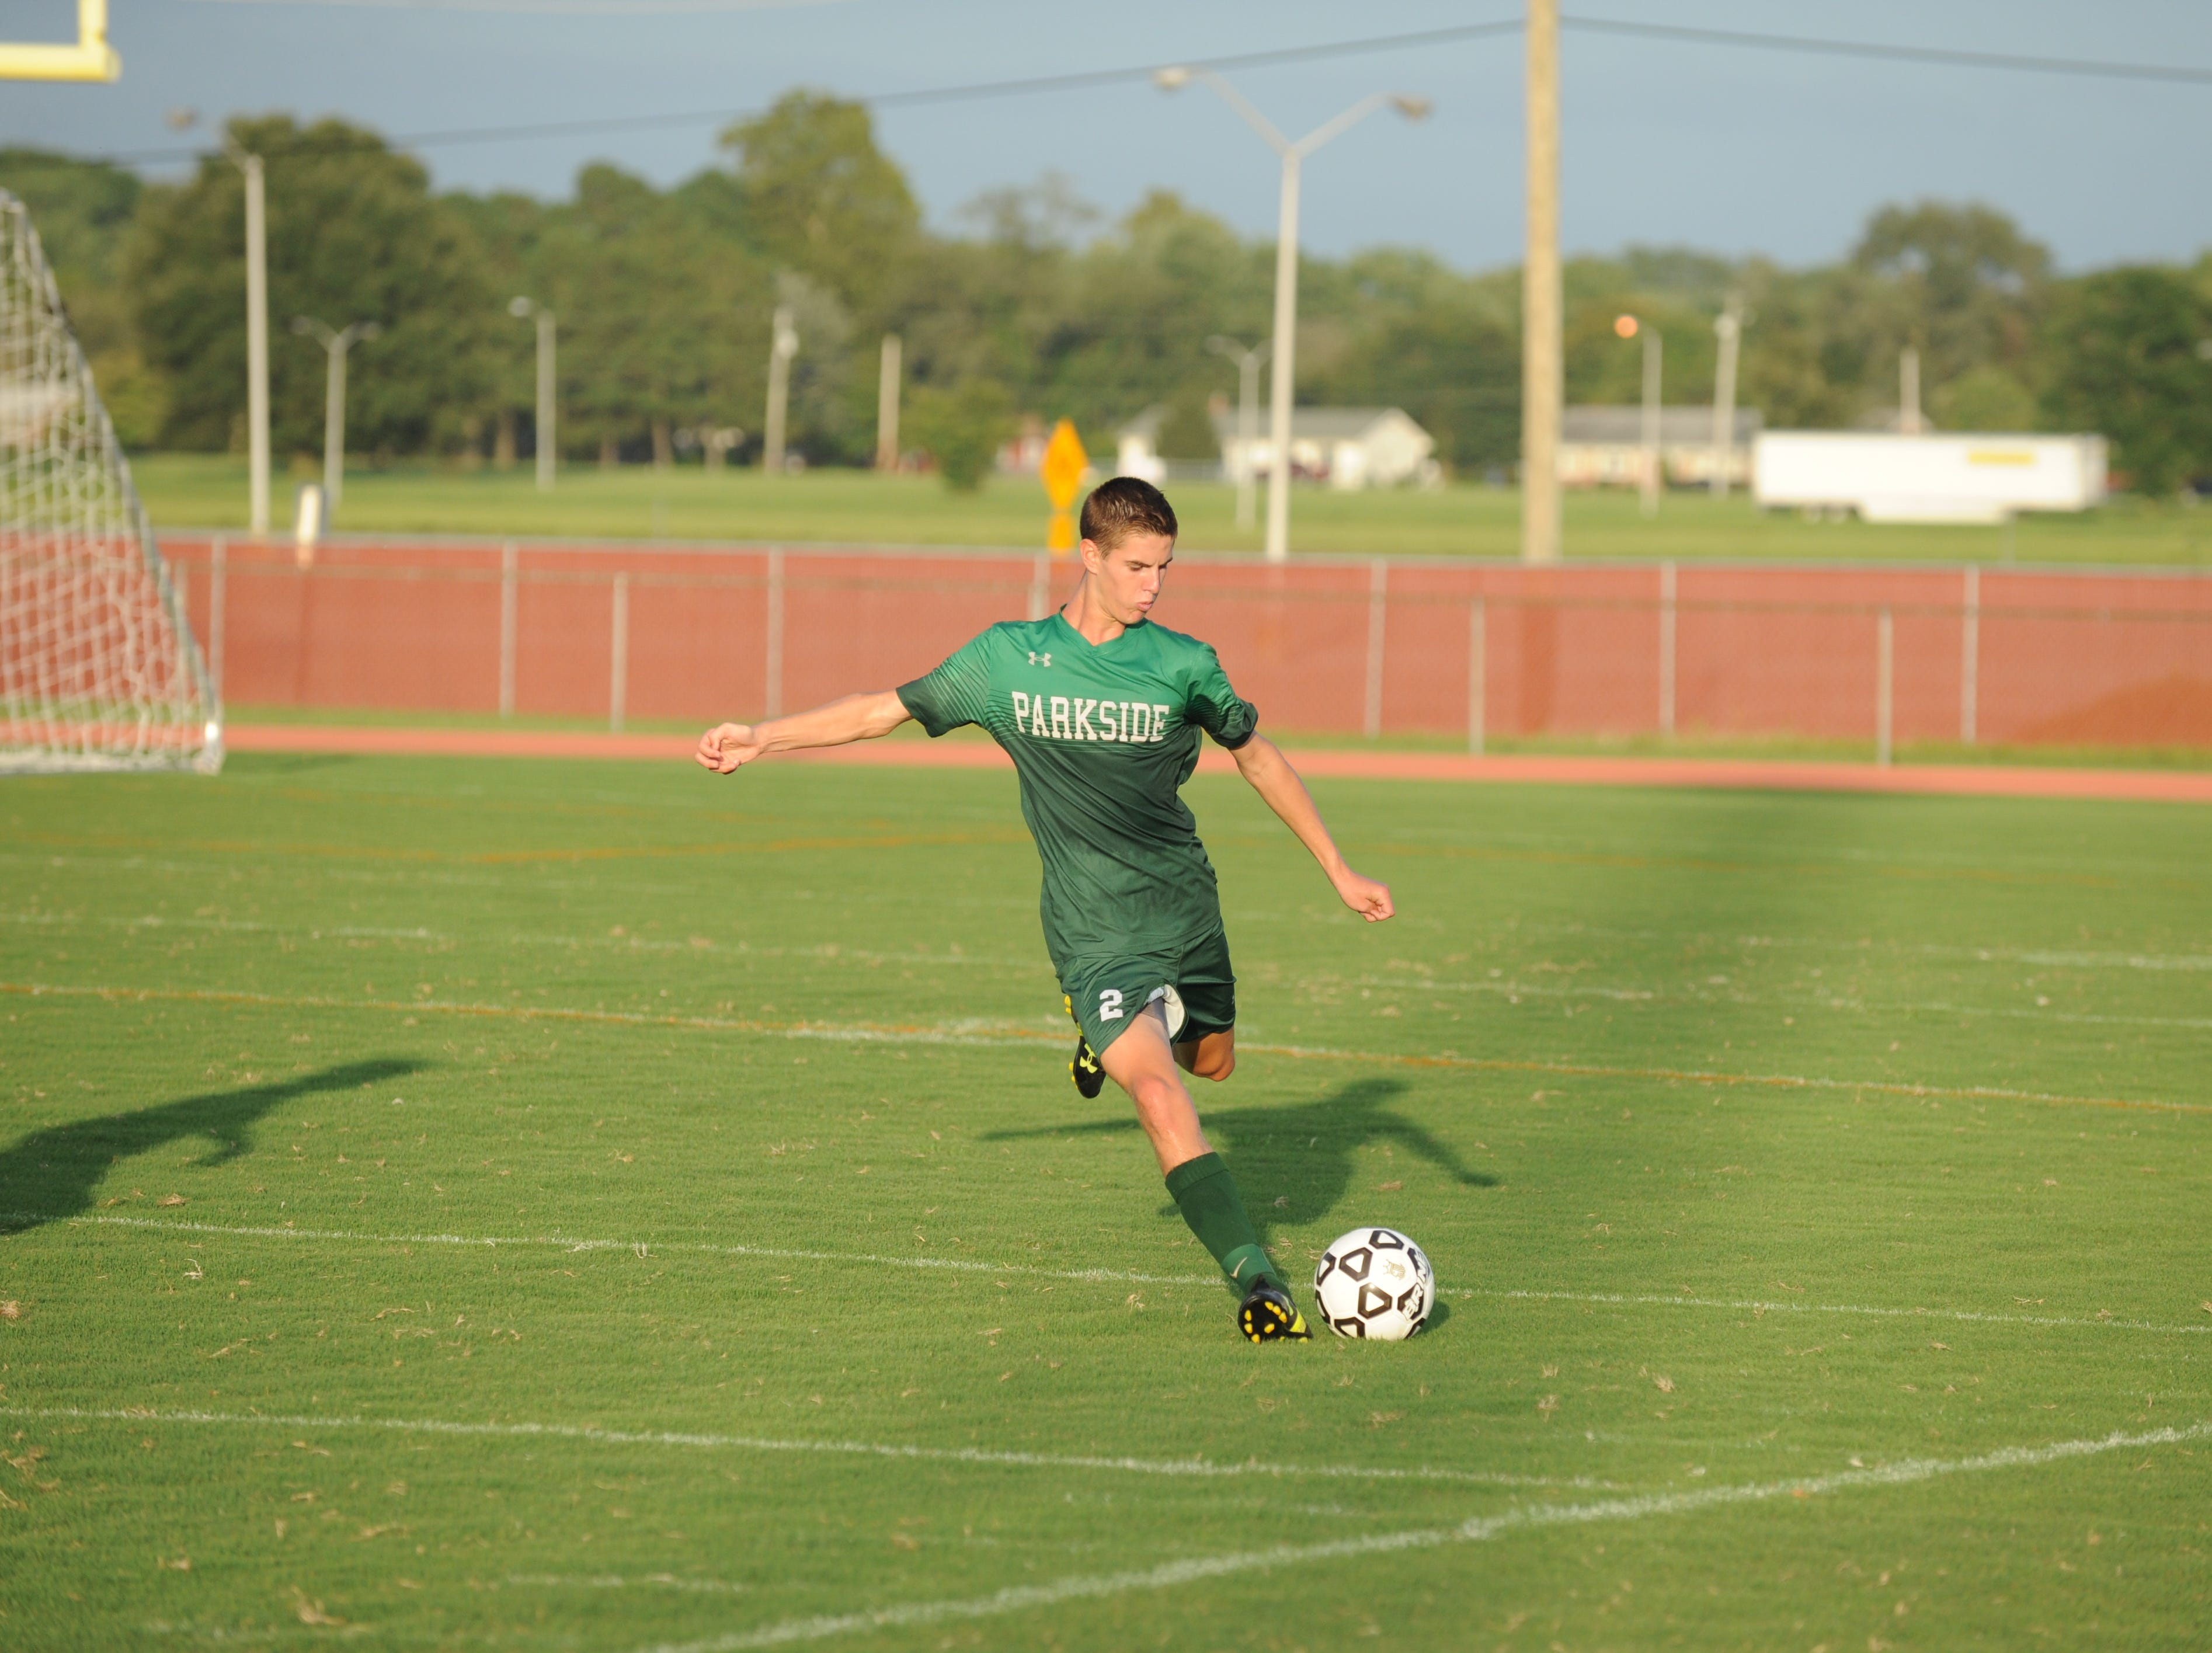 Parkside defender Stevie Mancha prepares to kick a ball up field during the Rams' boys soccer game against Bennett Monday night at County Stadium.